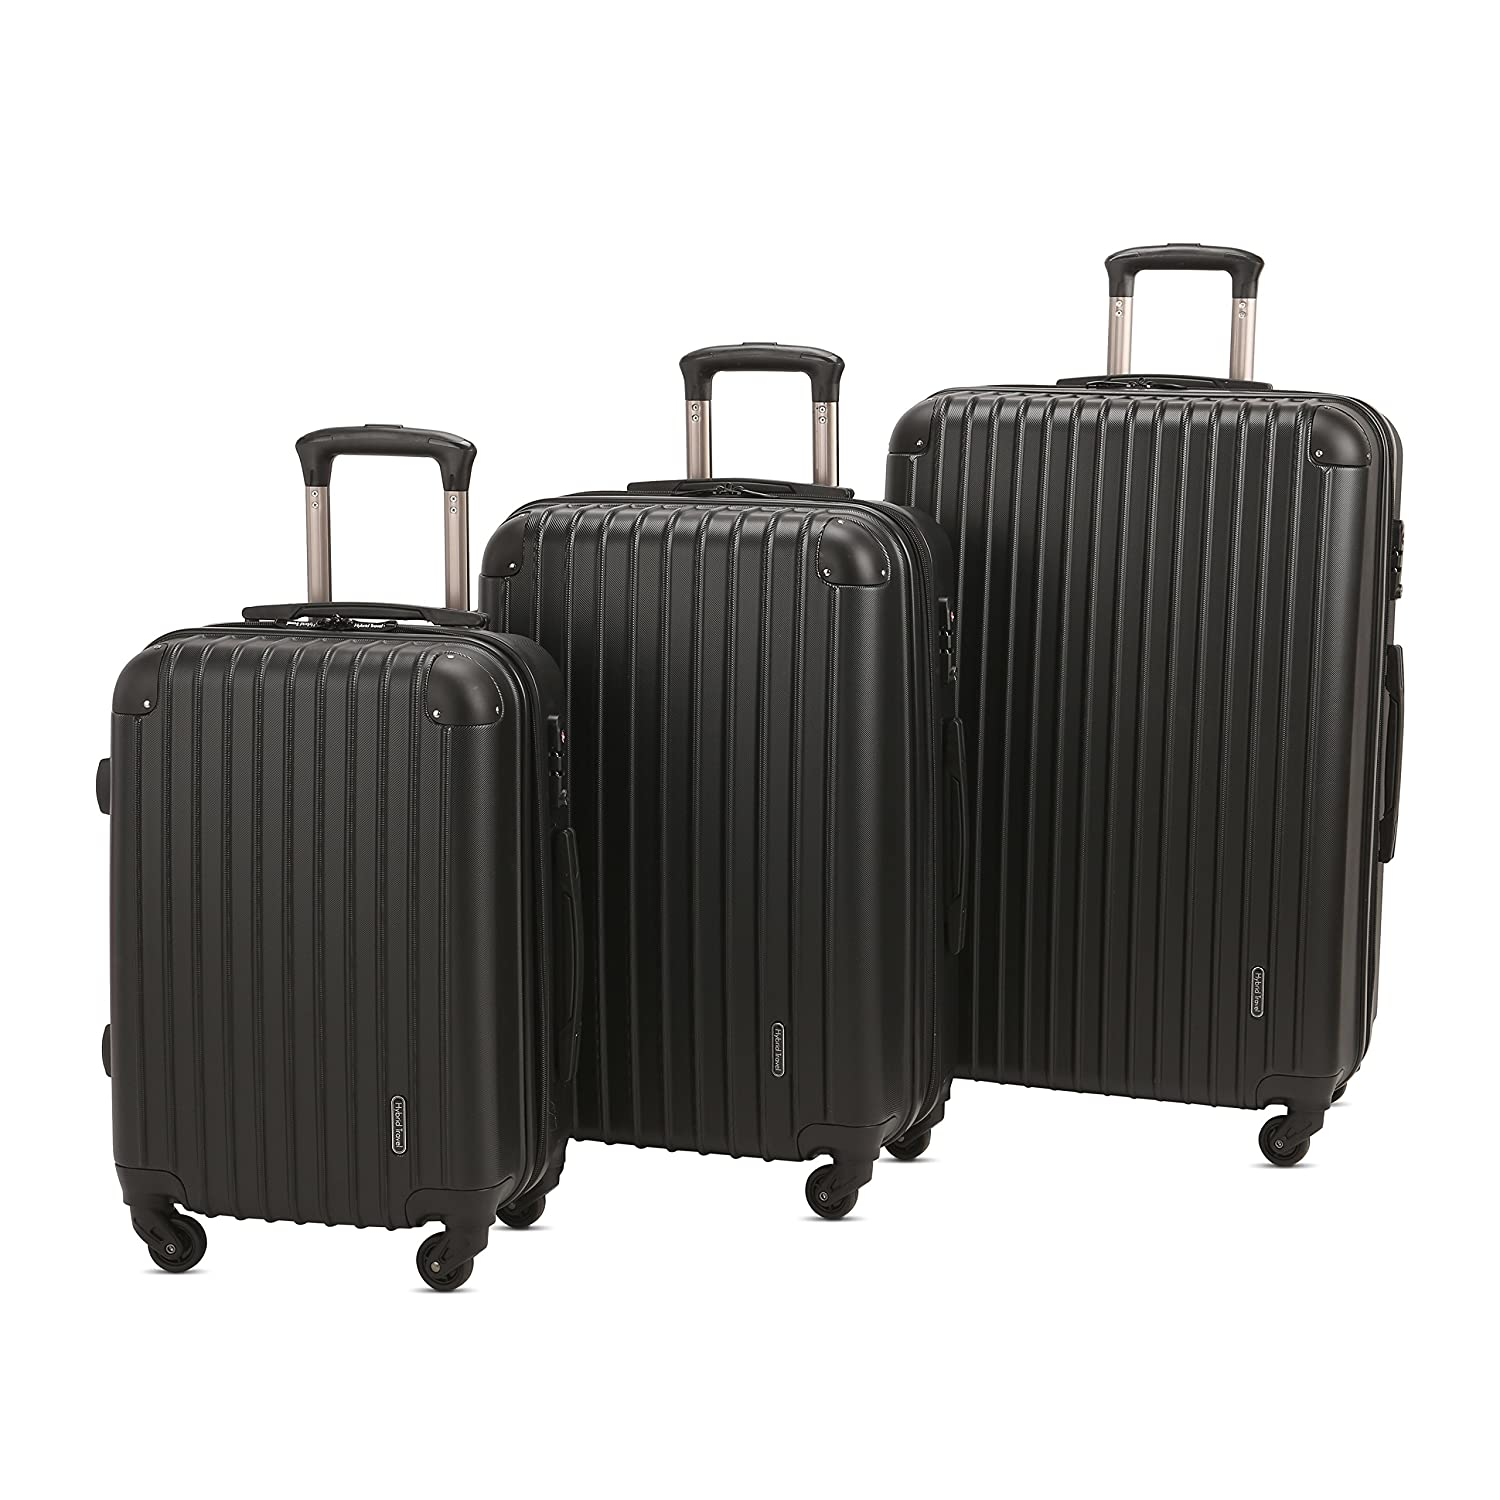 fb962f34c346 HyBrid & Company Luggage Set Durable Lightweight Spinner Suitcase  LUG3-9018, 3 Pieces, Black